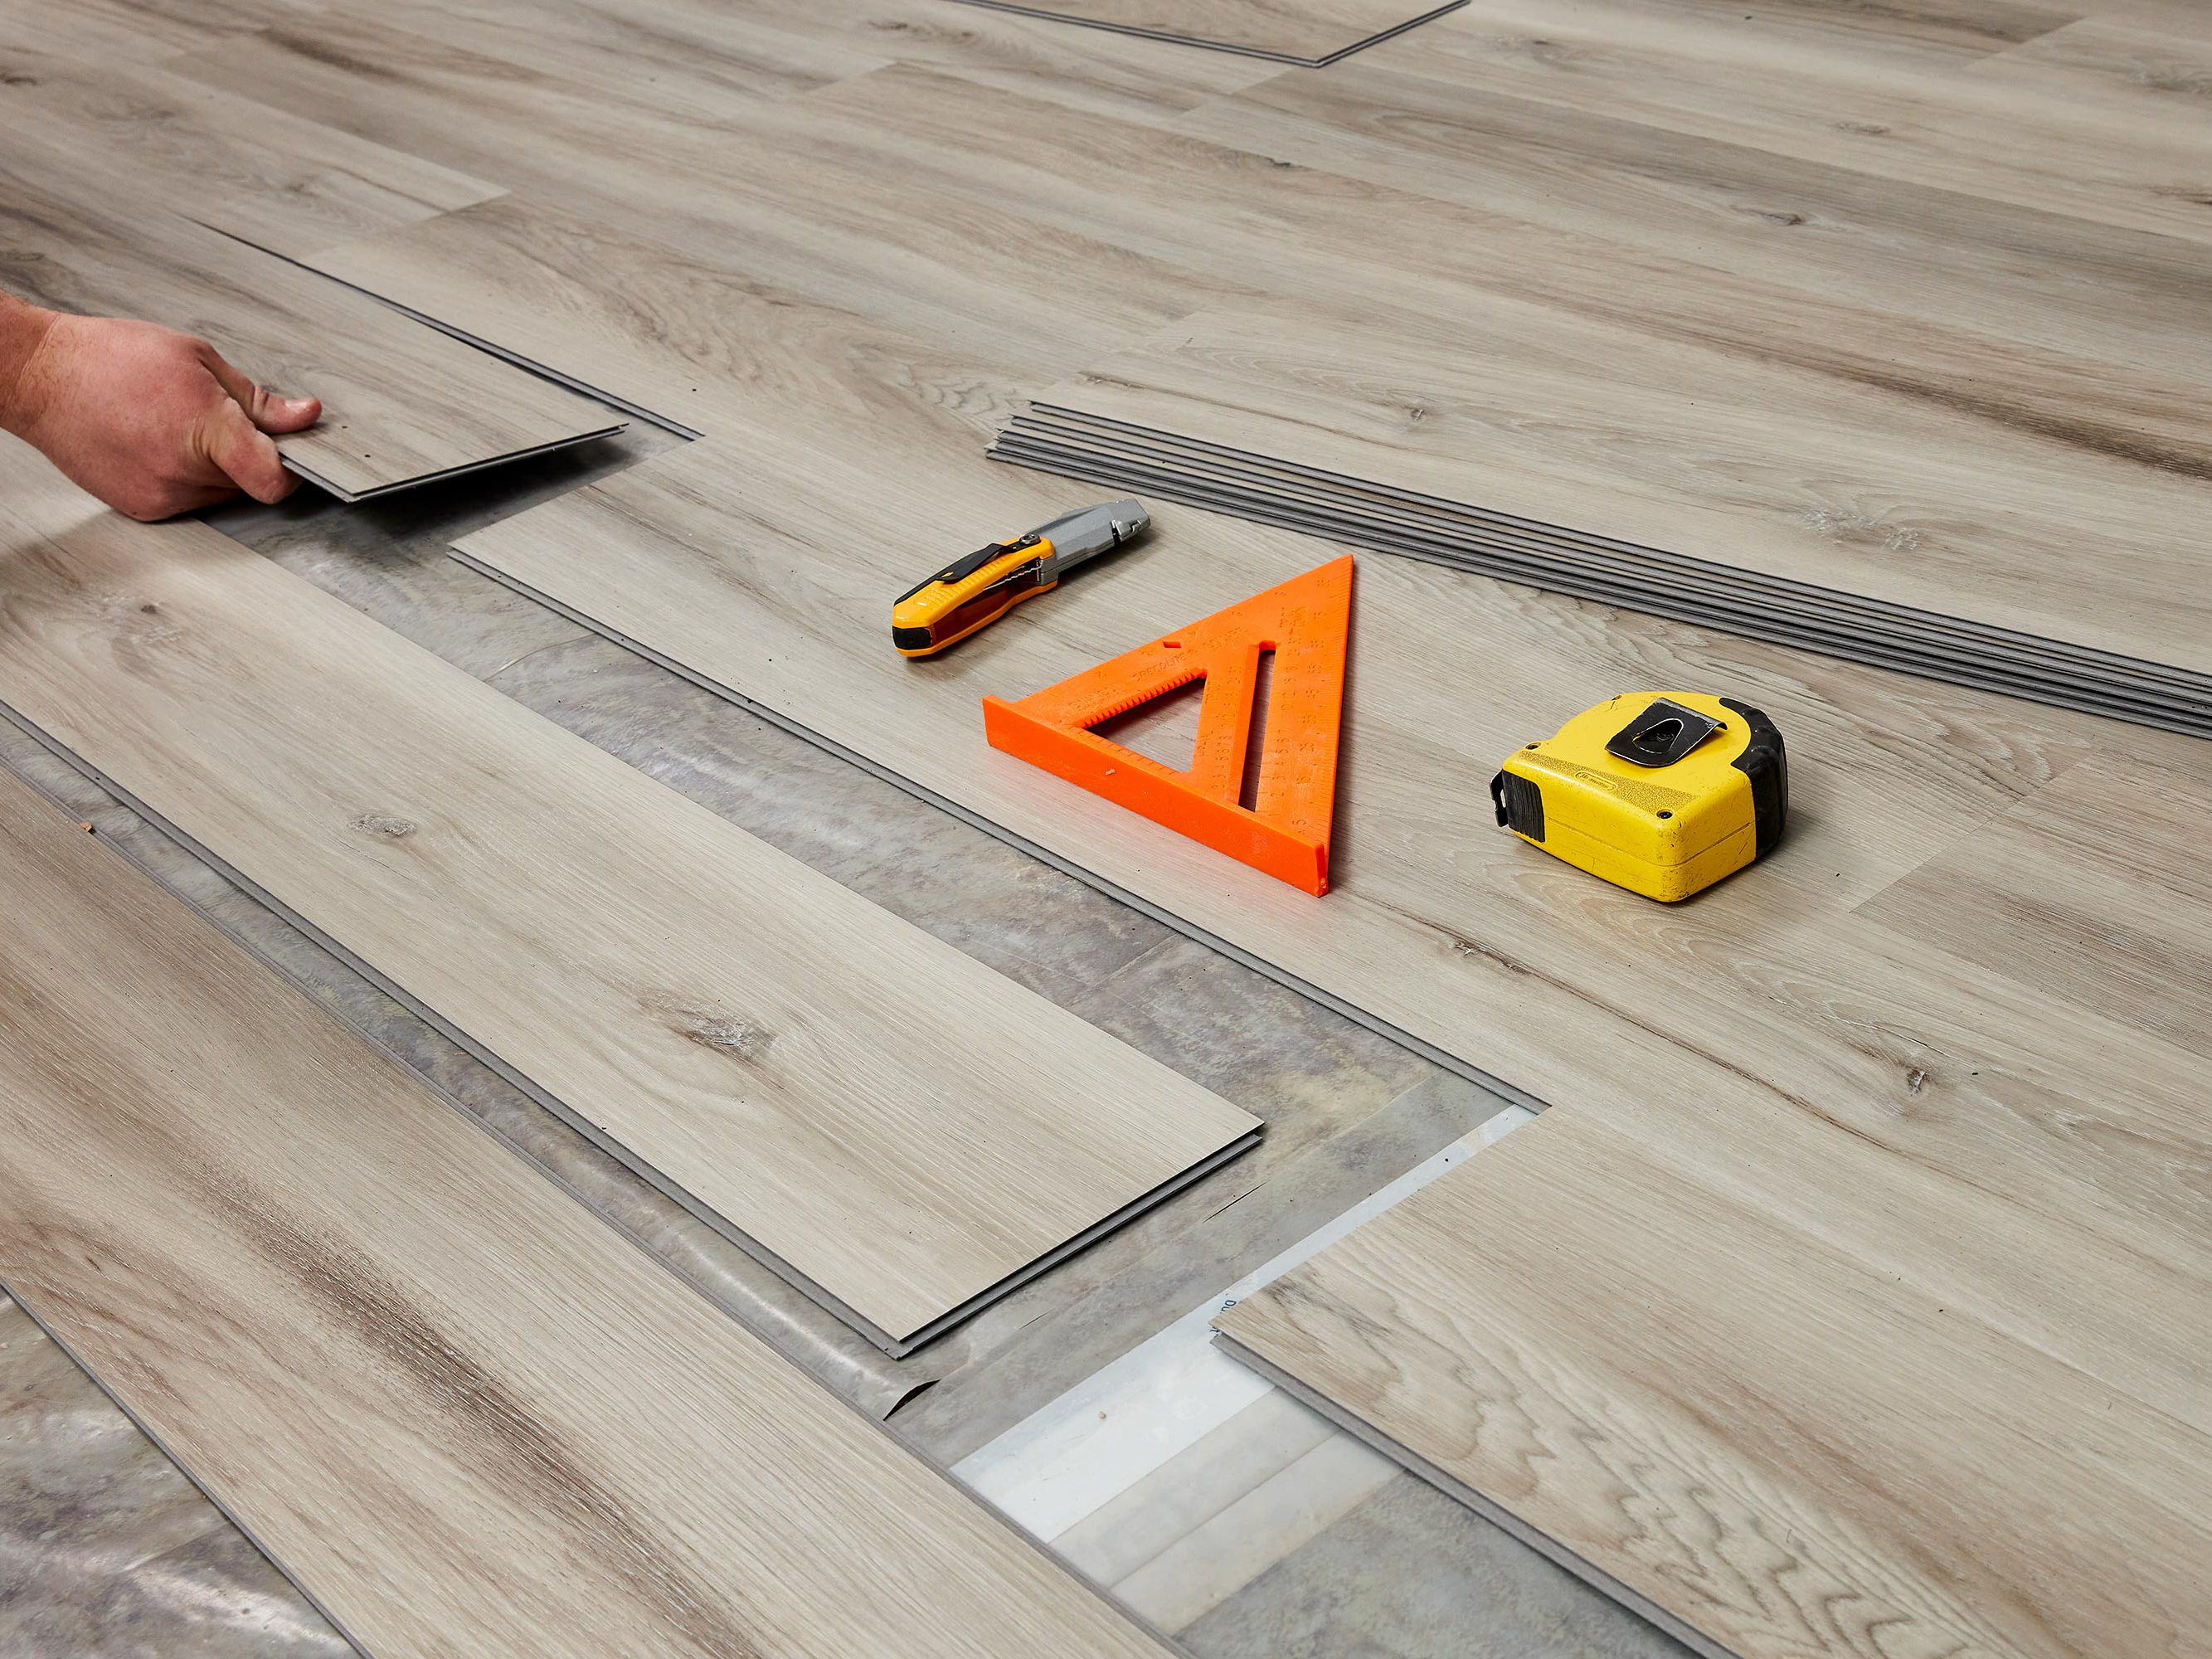 Floating Floors Pros And Cons, Is It Better To Glue Or Float Hardwood Floors